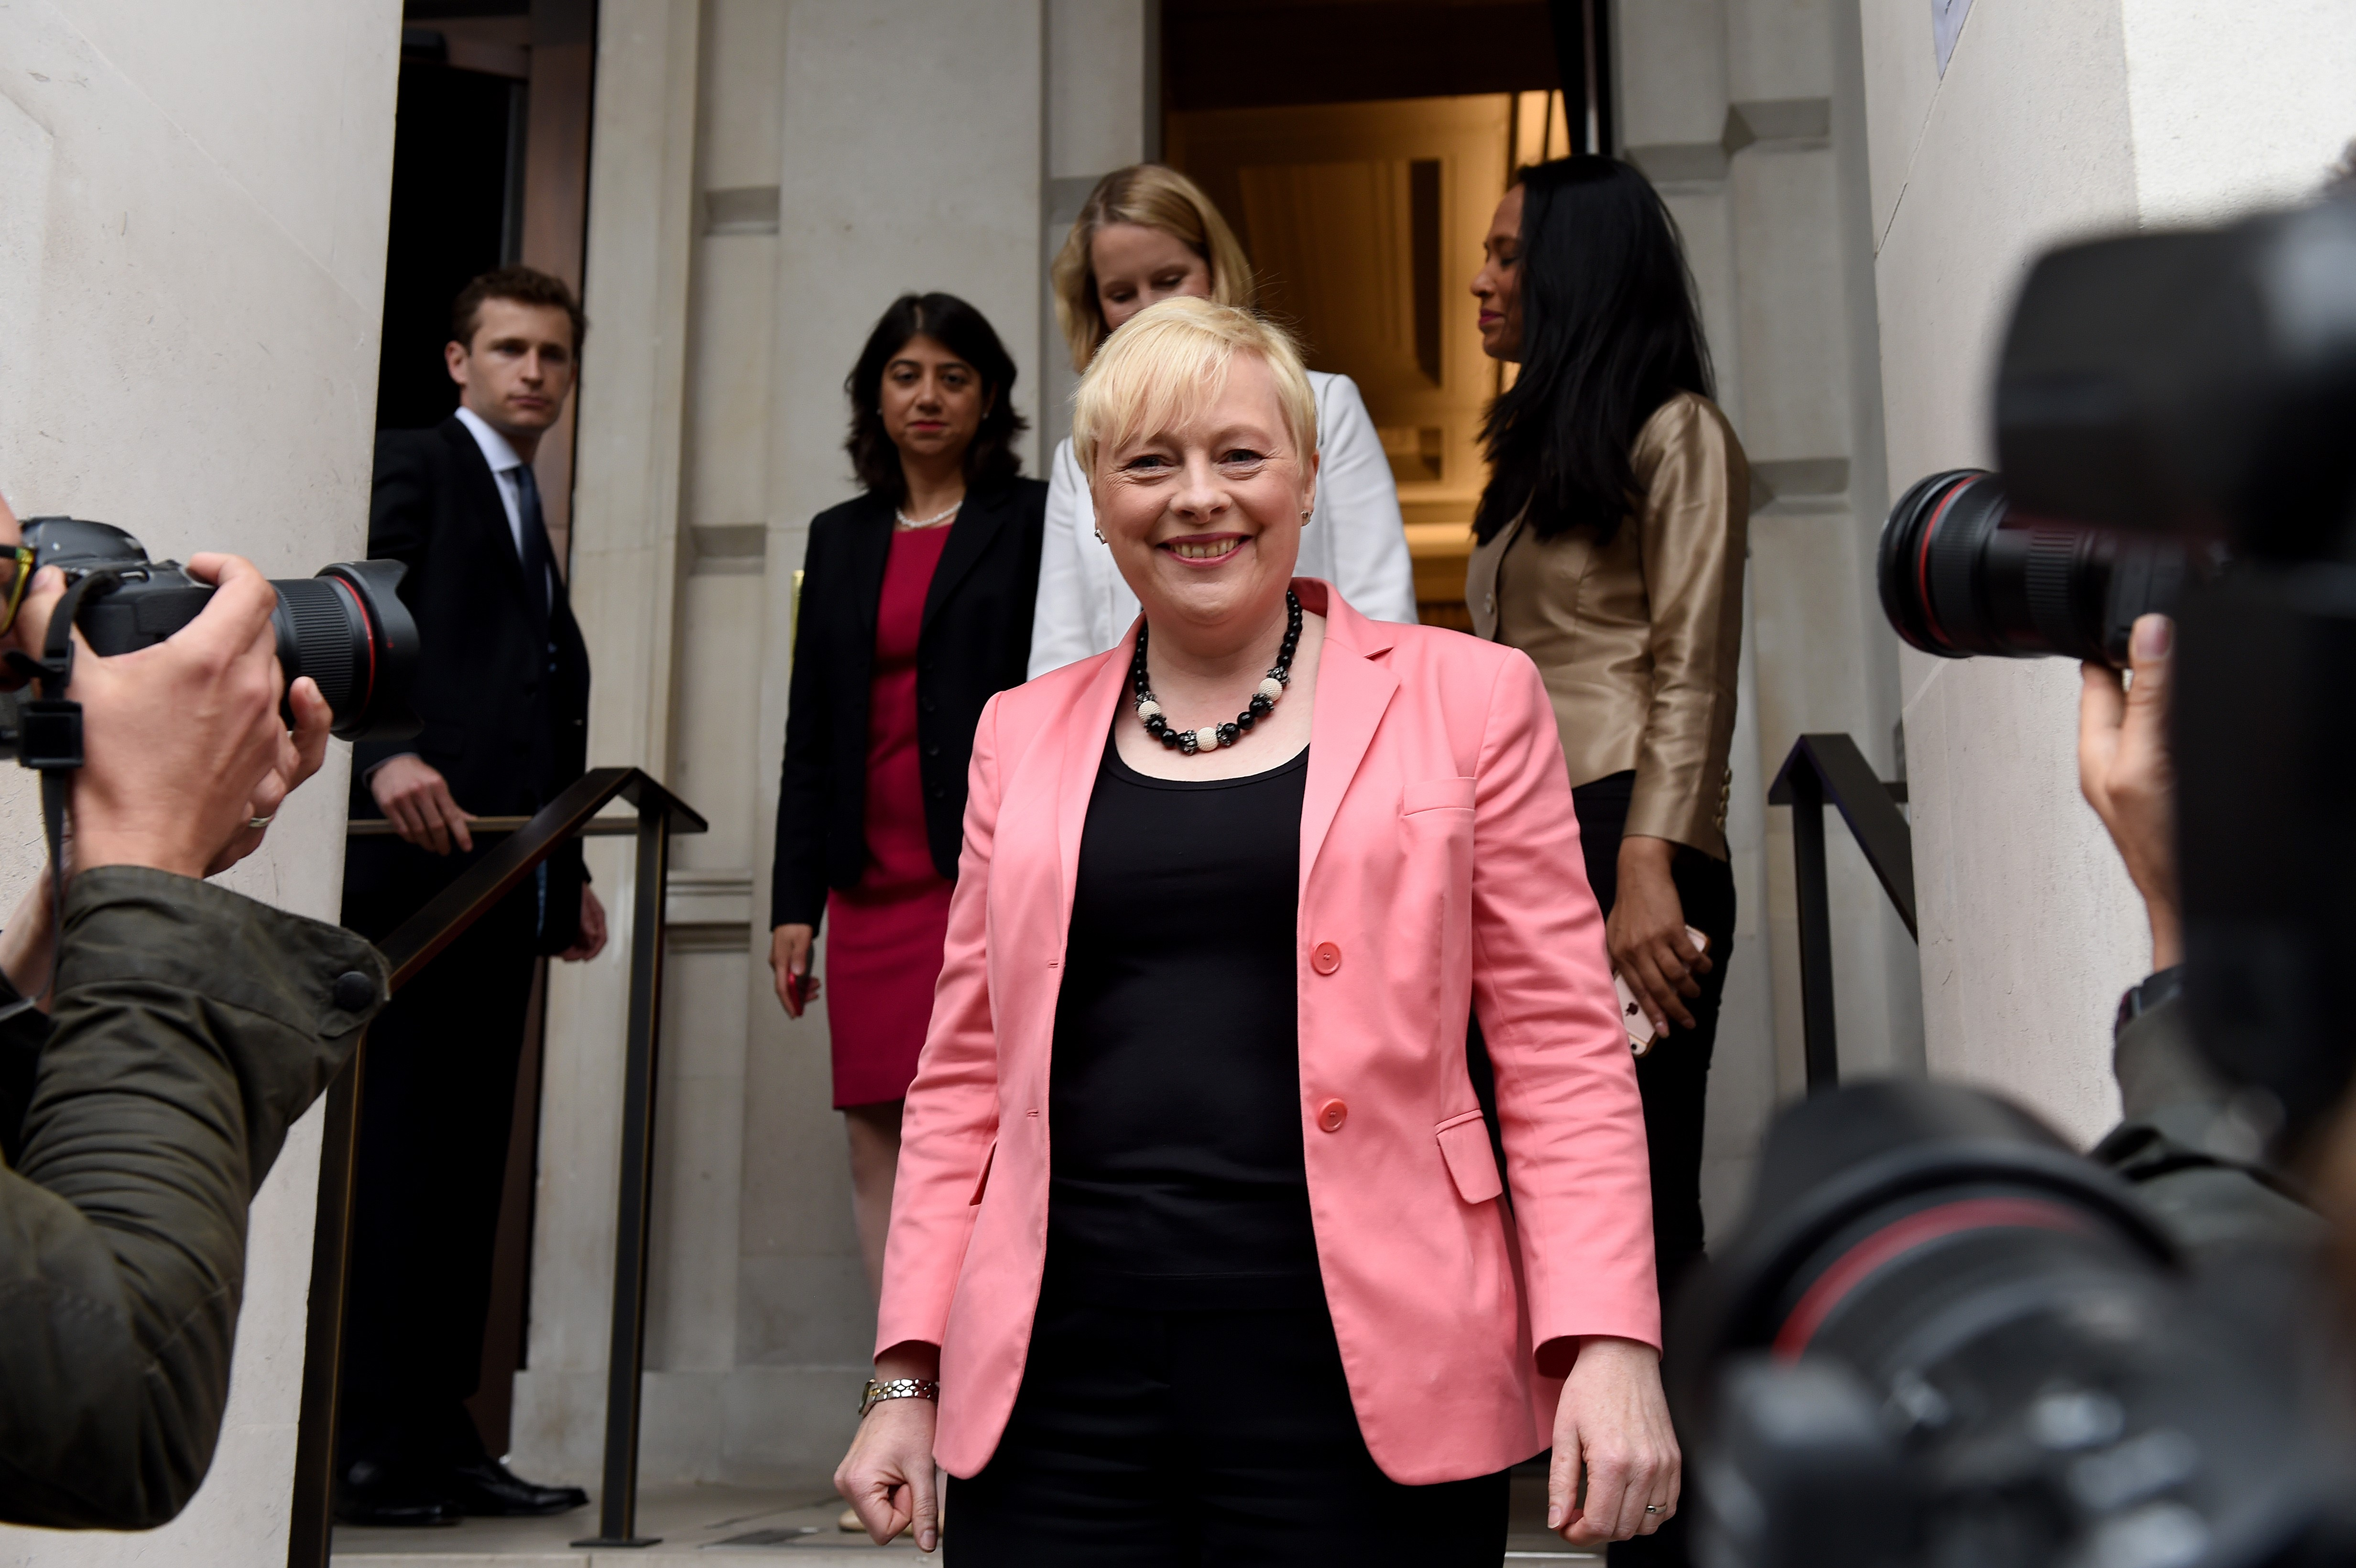 Angela Eagle's leadership challenge against Labour Party leader Jeremy Corbyn